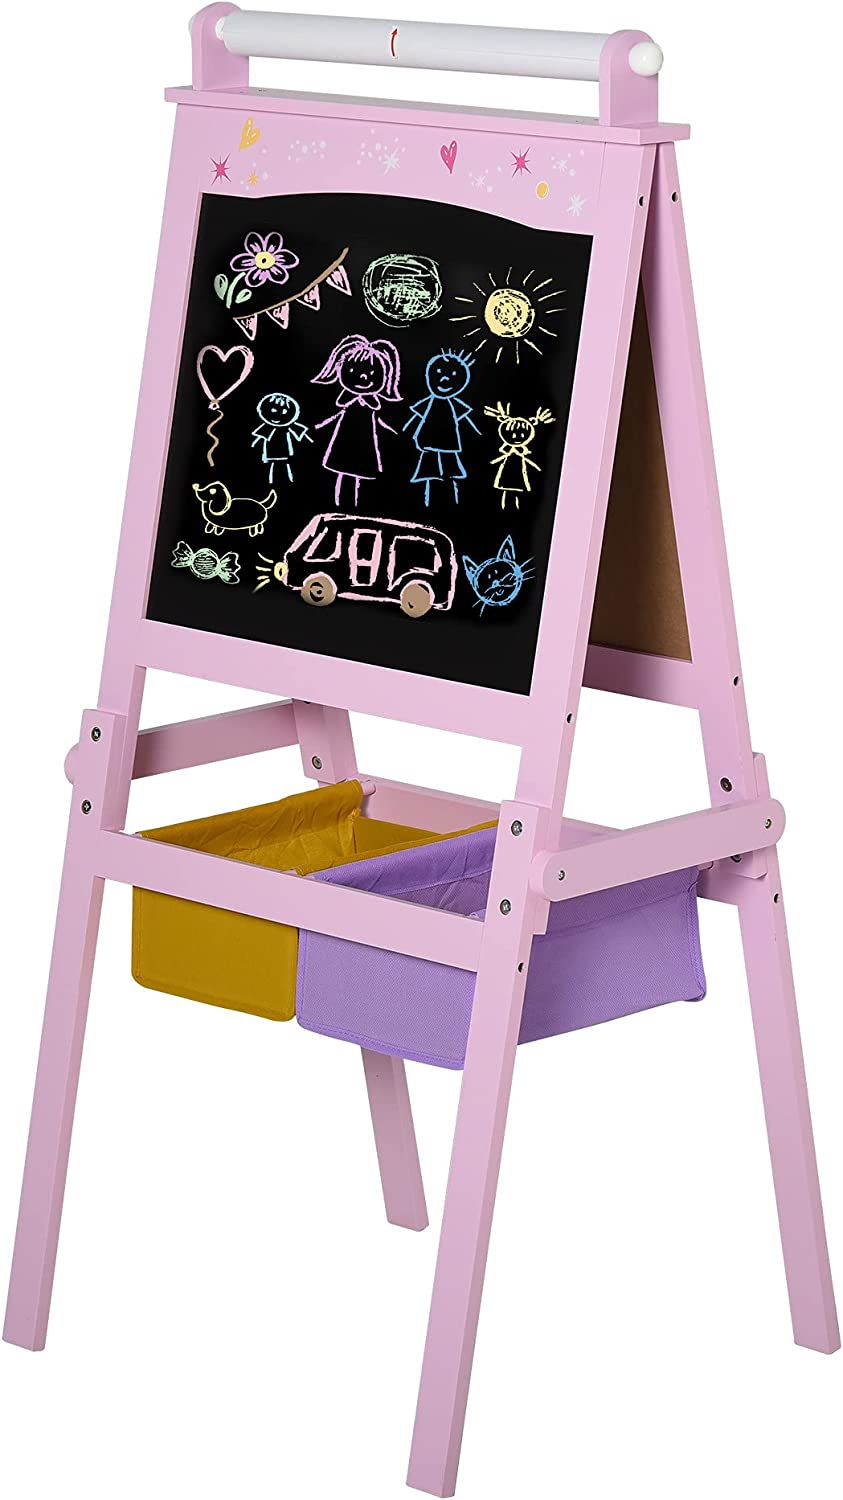 Qaba 3 in 1 Kids Wooden Art Easel with Paper Roll Double-Sided C